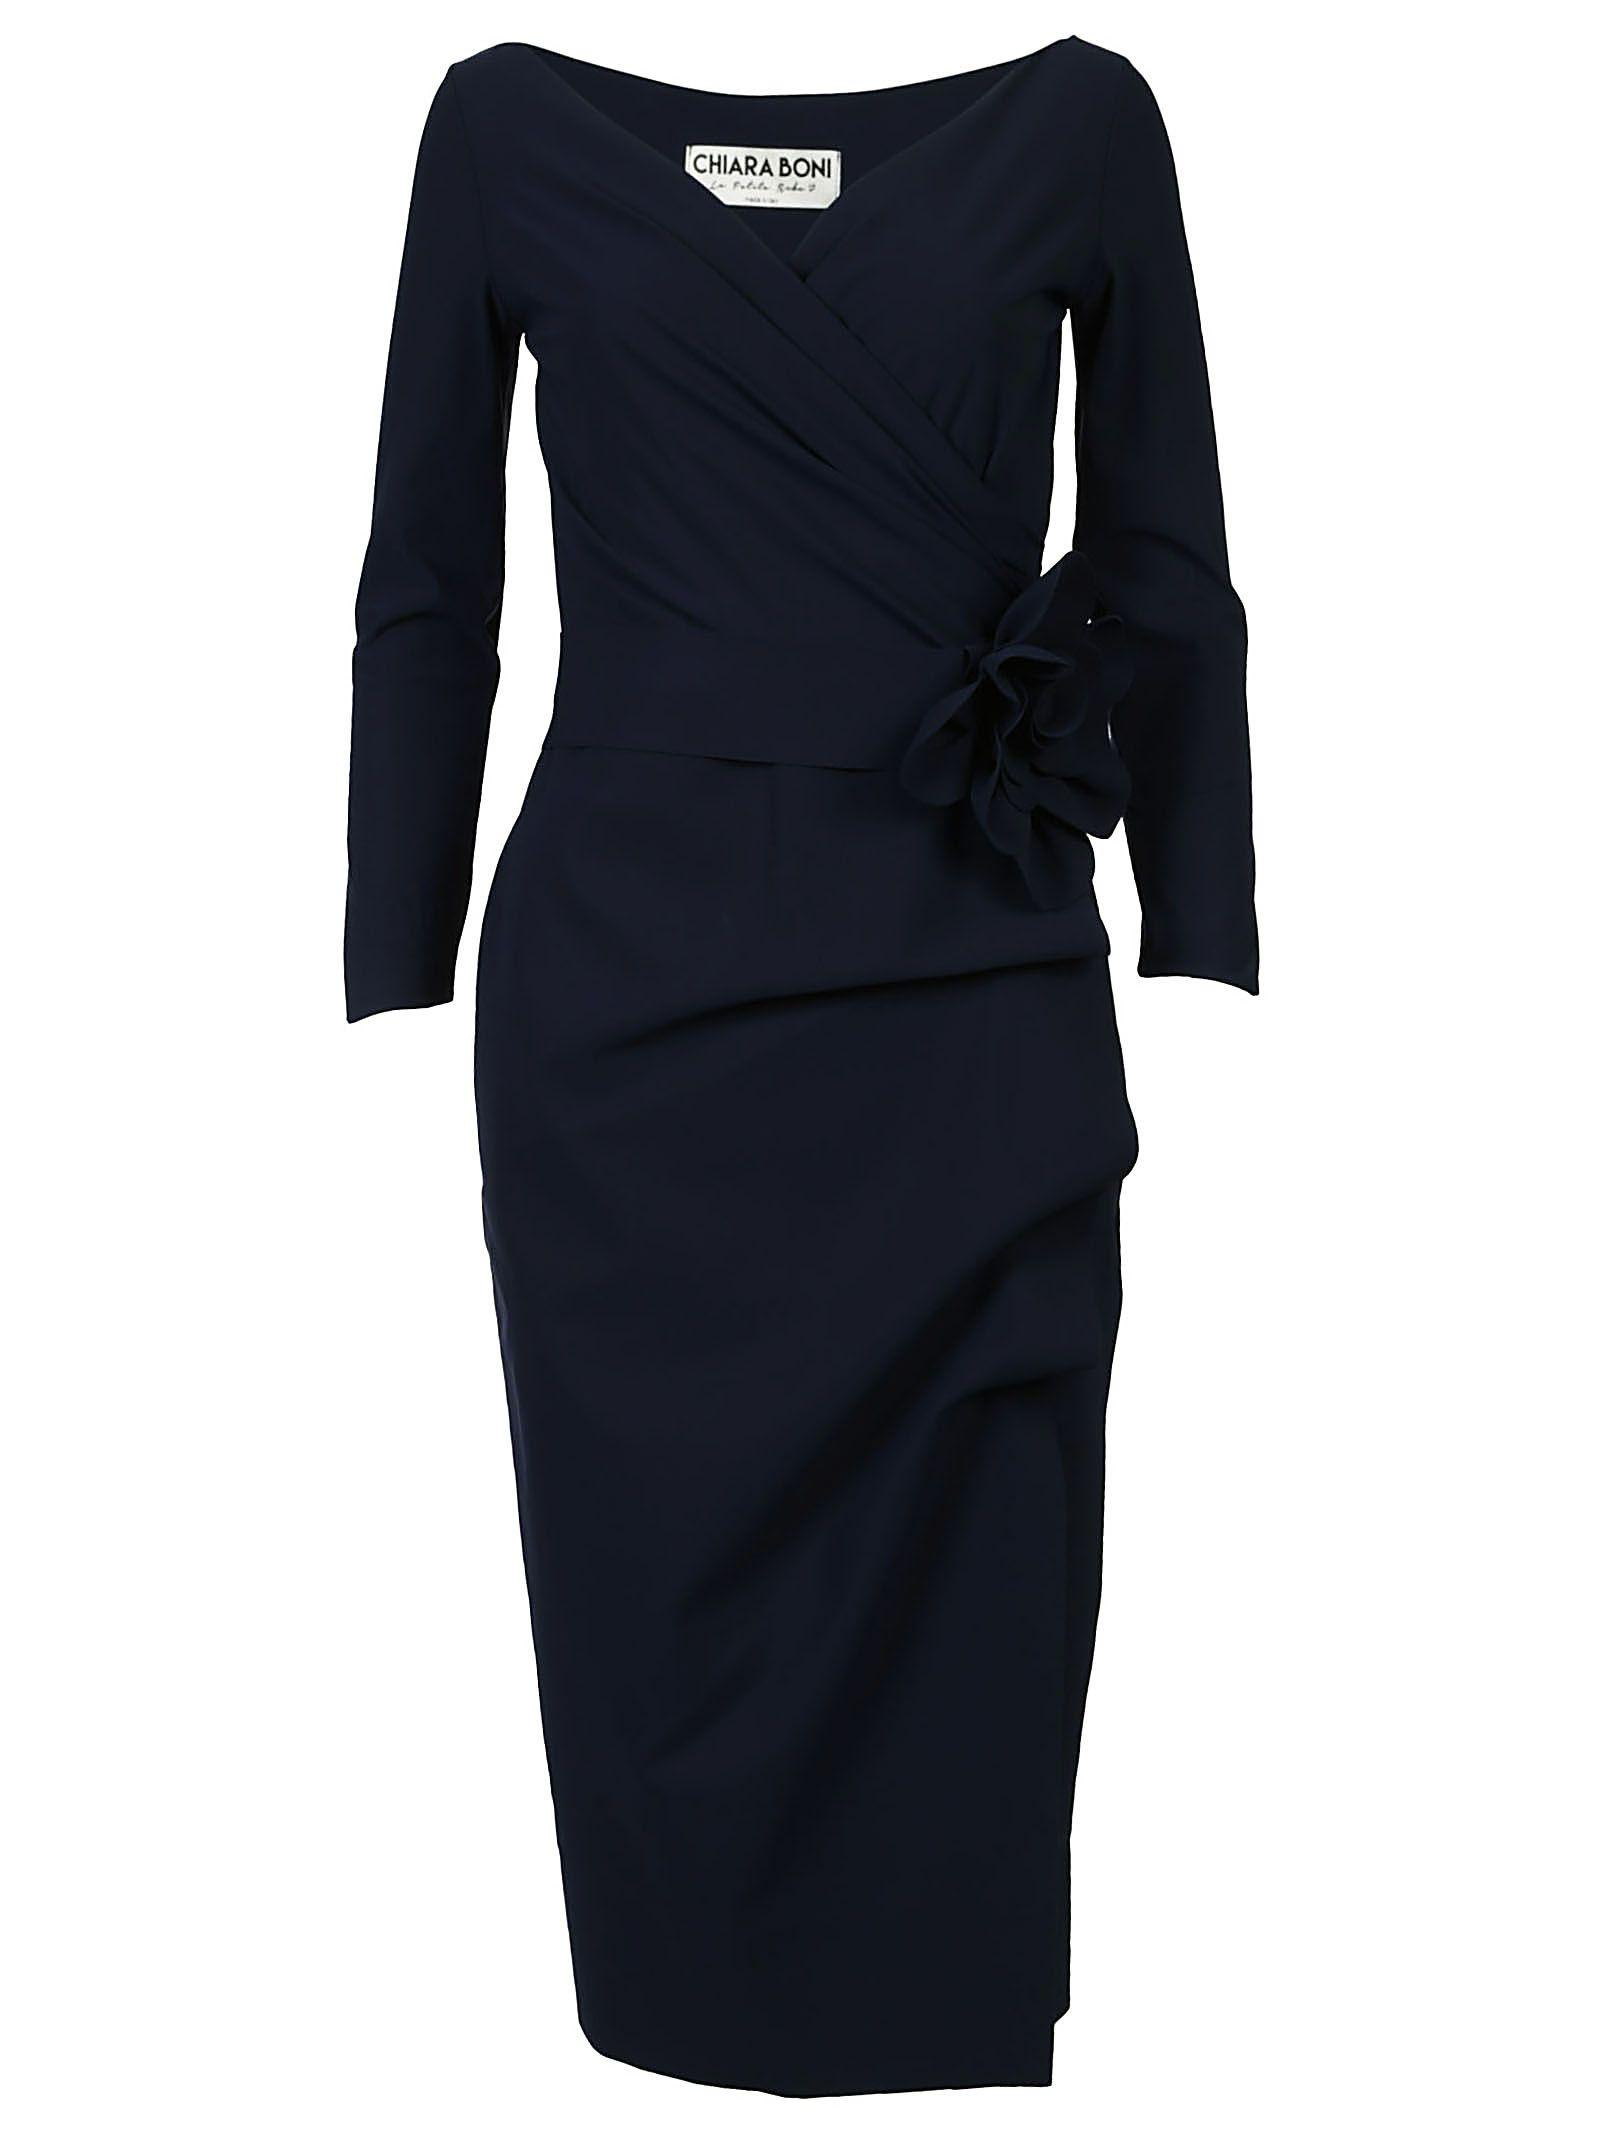 La Petit Robe Di Chiara Boni Chiara Boni Long-sleeve Dress In Dusk Blue